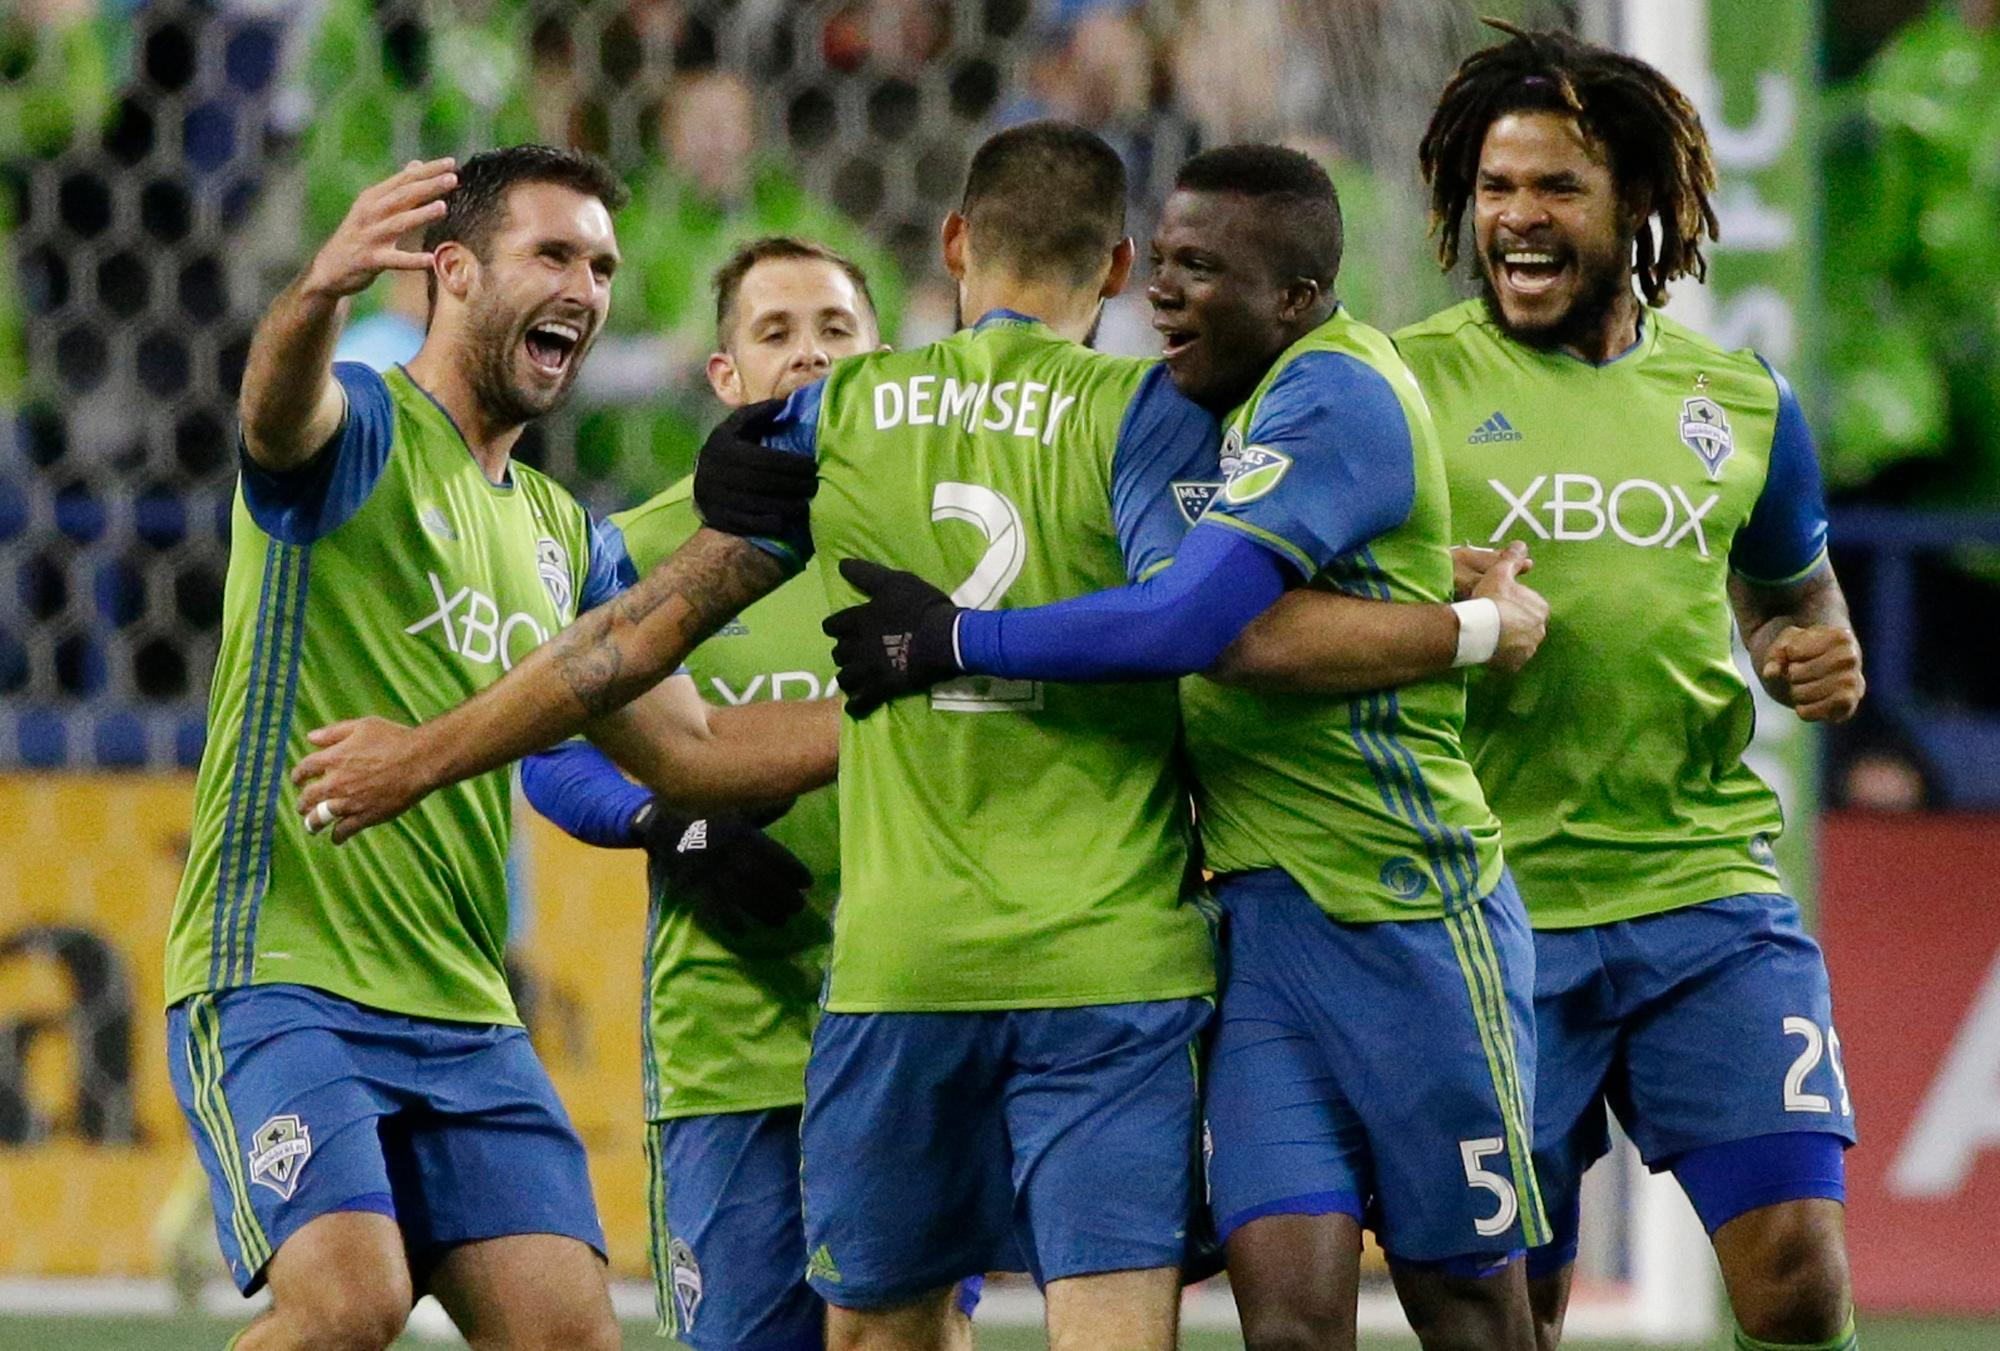 FILE - In this Nov. 3, 2017, file photo, Seattle Sounders forward Clint Dempsey (2) is greeted by teammates after he scored the first of two goals in the second half of the second leg of an MLS soccer Western Conference semifinal against the Vancouver Whitecaps in Seattle. Dempsey has been named the MLS Comeback Player of the Year after a heart condition in 2016 put his career in jeopardy. Dempsey was the choice after scoring 12 goals in the 2017 regular season and leading Seattle to a second-place finish in the MLS Western Conference. The Sounders will face Houston in the Western Conference finals beginning Nov. 21, 2017. (AP Photo/Ted S. Warren, file)